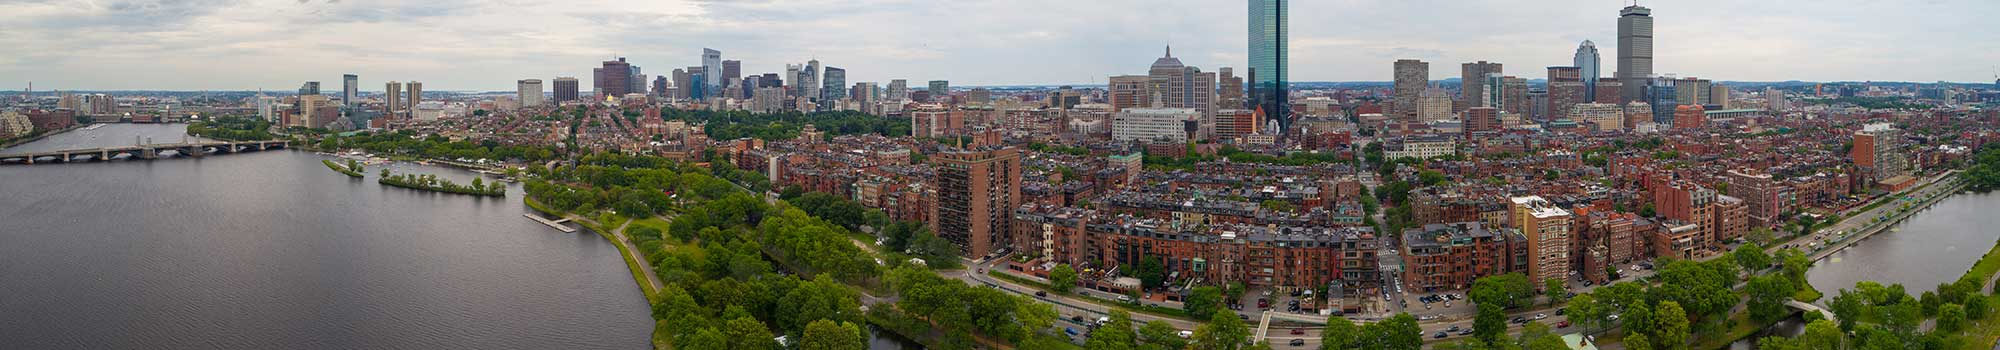 boston urban development